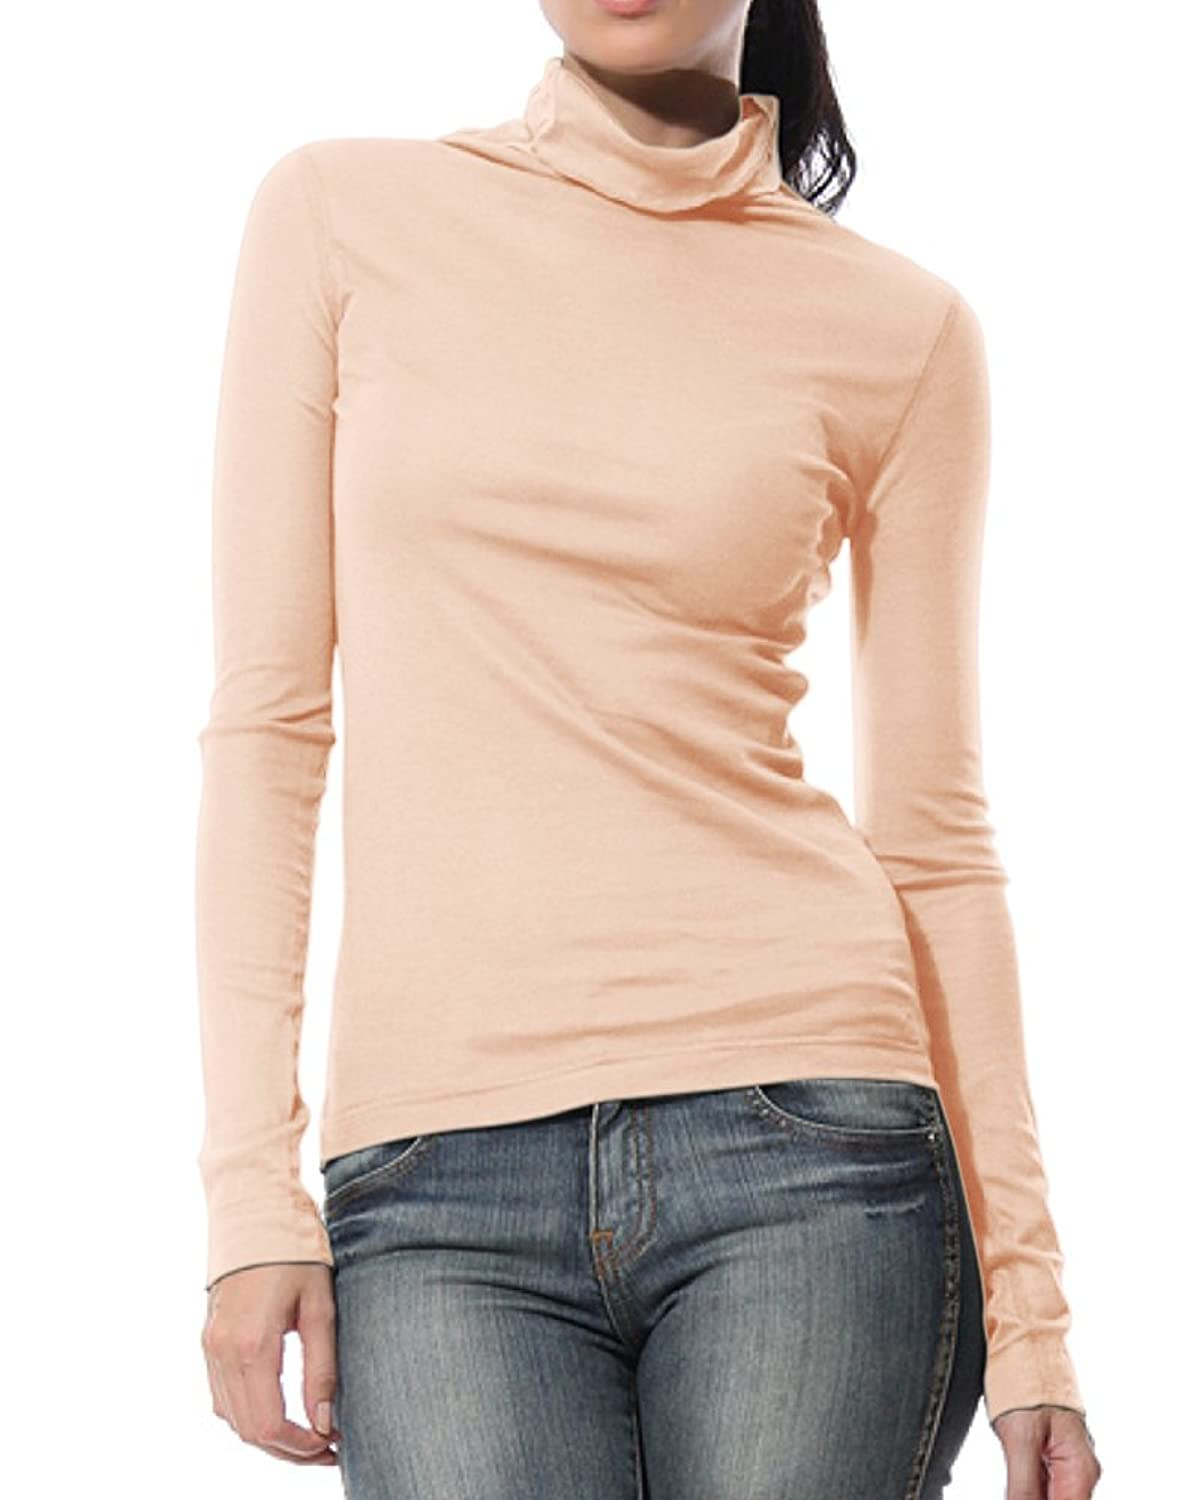 KalvonFu Women's Modal Turtleneck Long Sleeve Pullover Slim Fit Casual T-Shirt